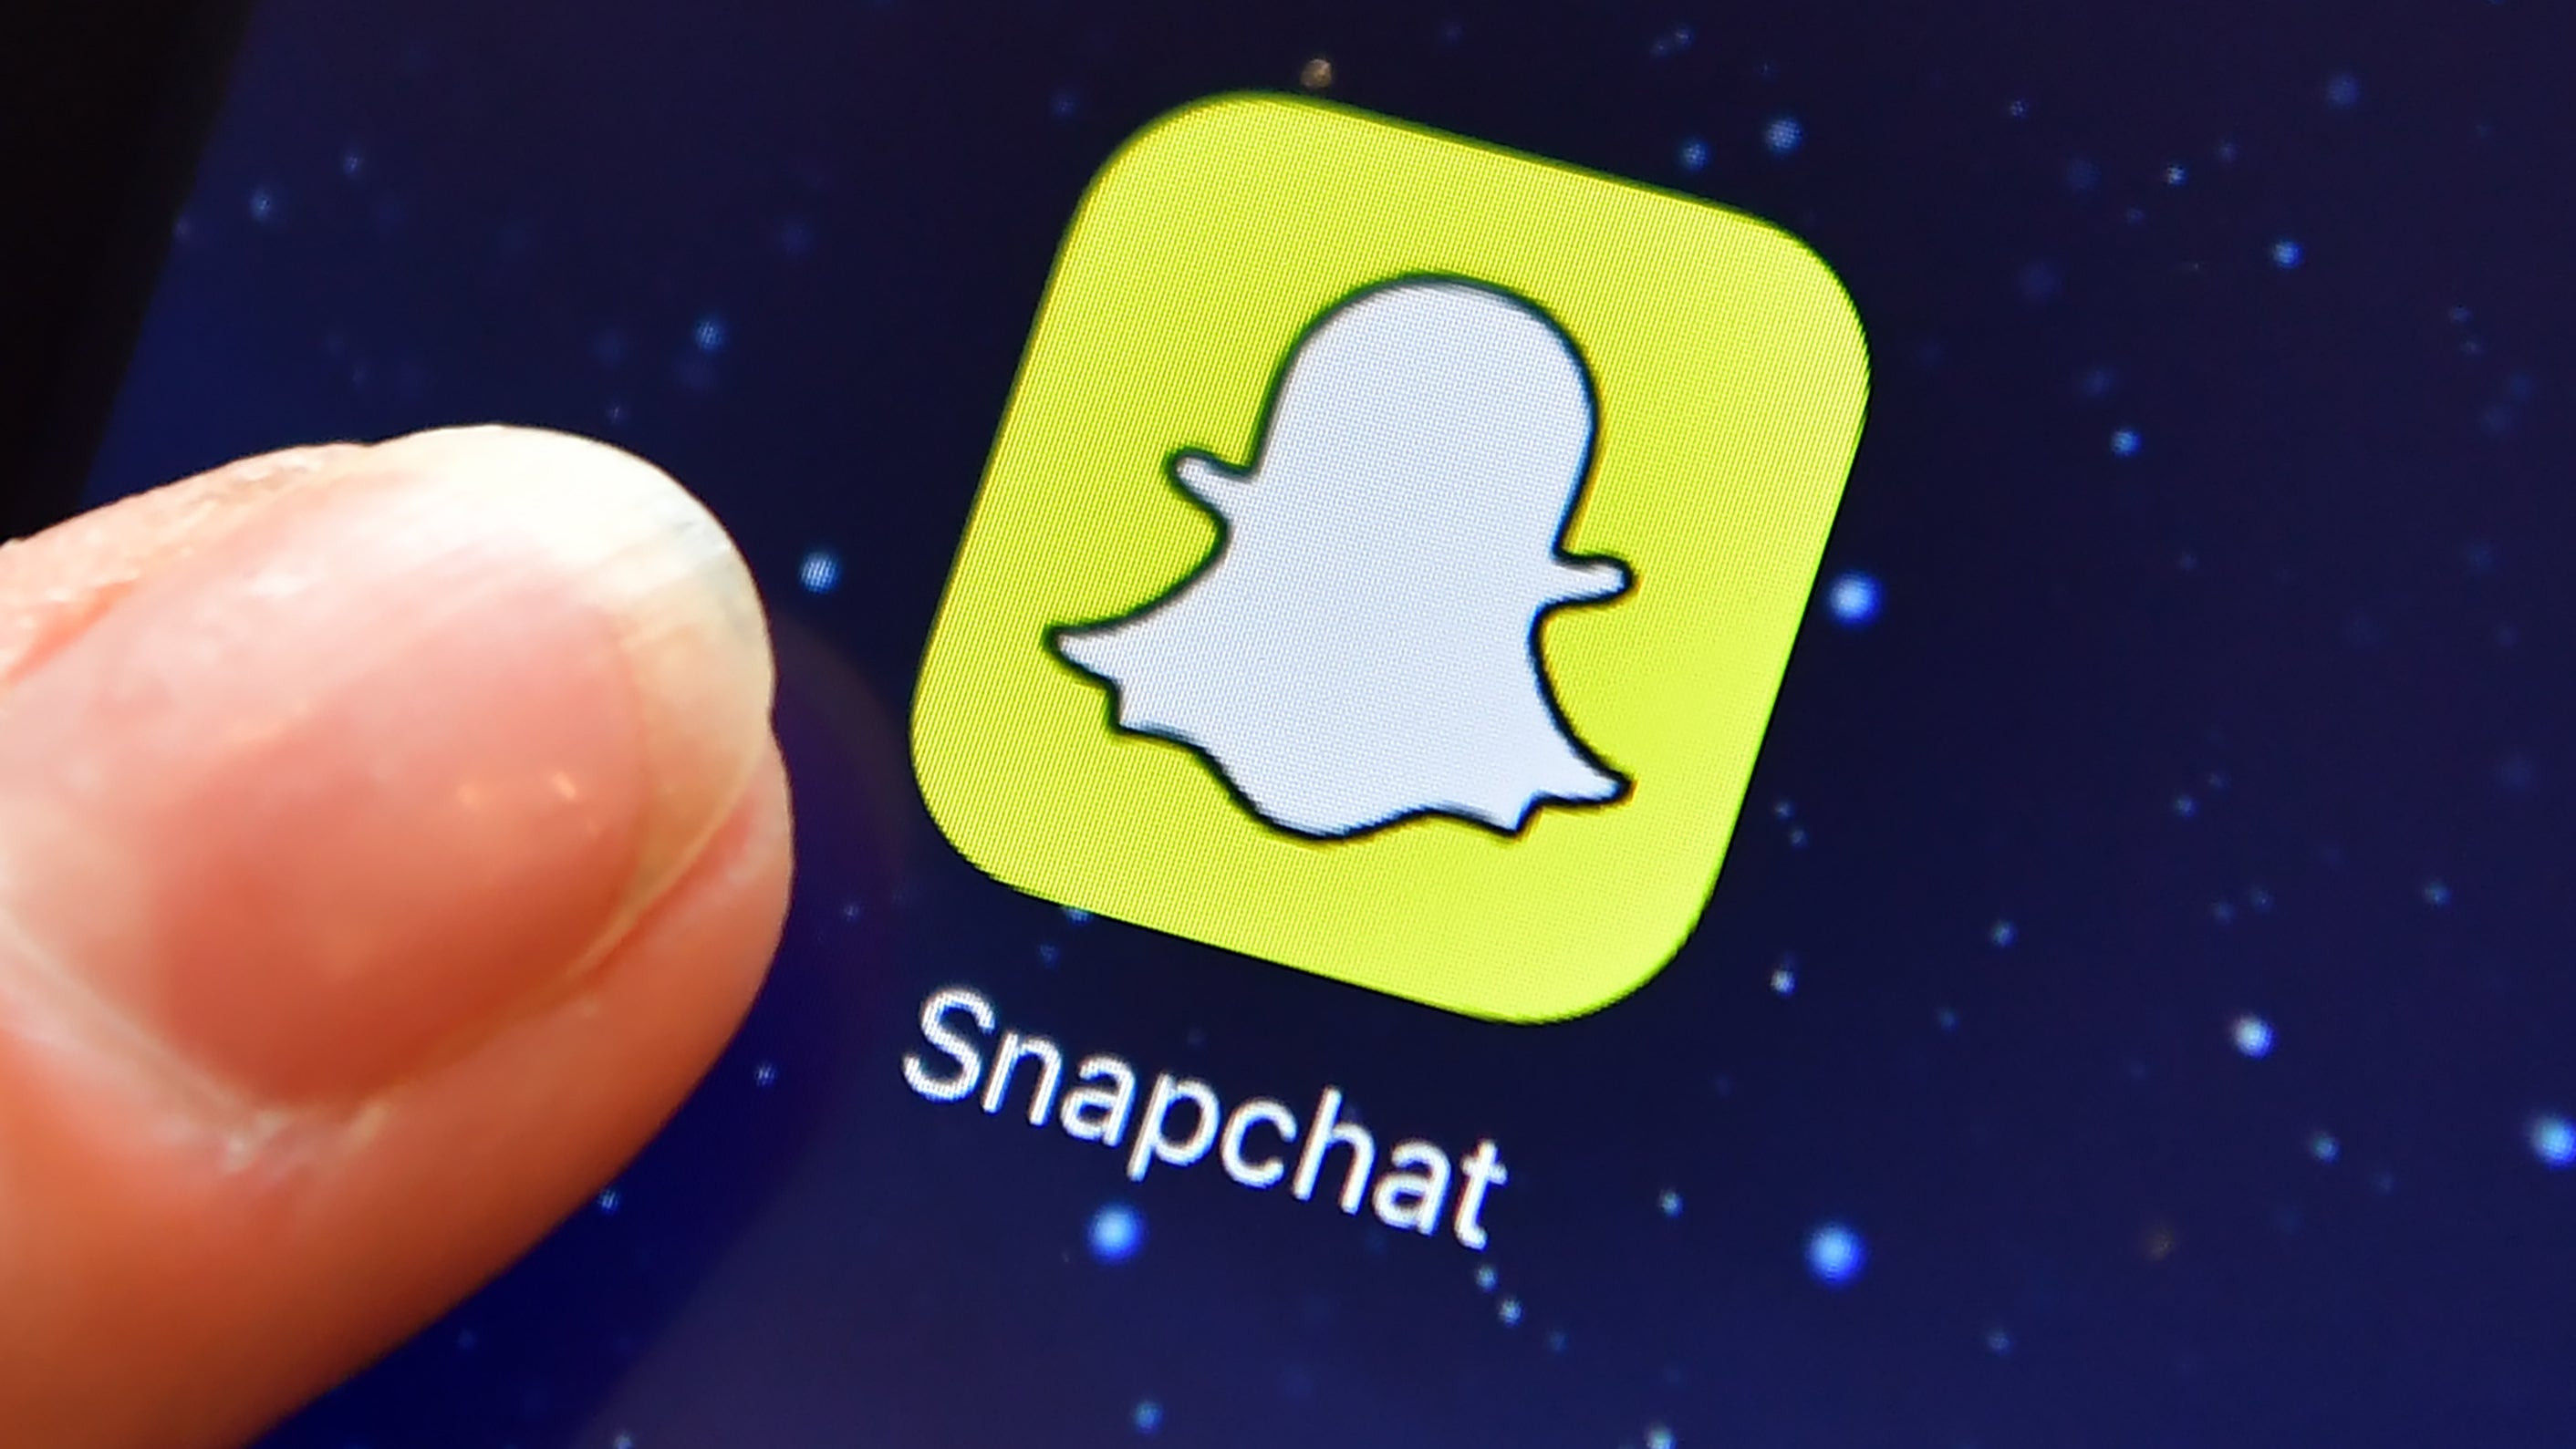 Snapchat User Known As 'Lol Atyou' Charged With Sexual Assault In Revenge Porn Extortion Plot